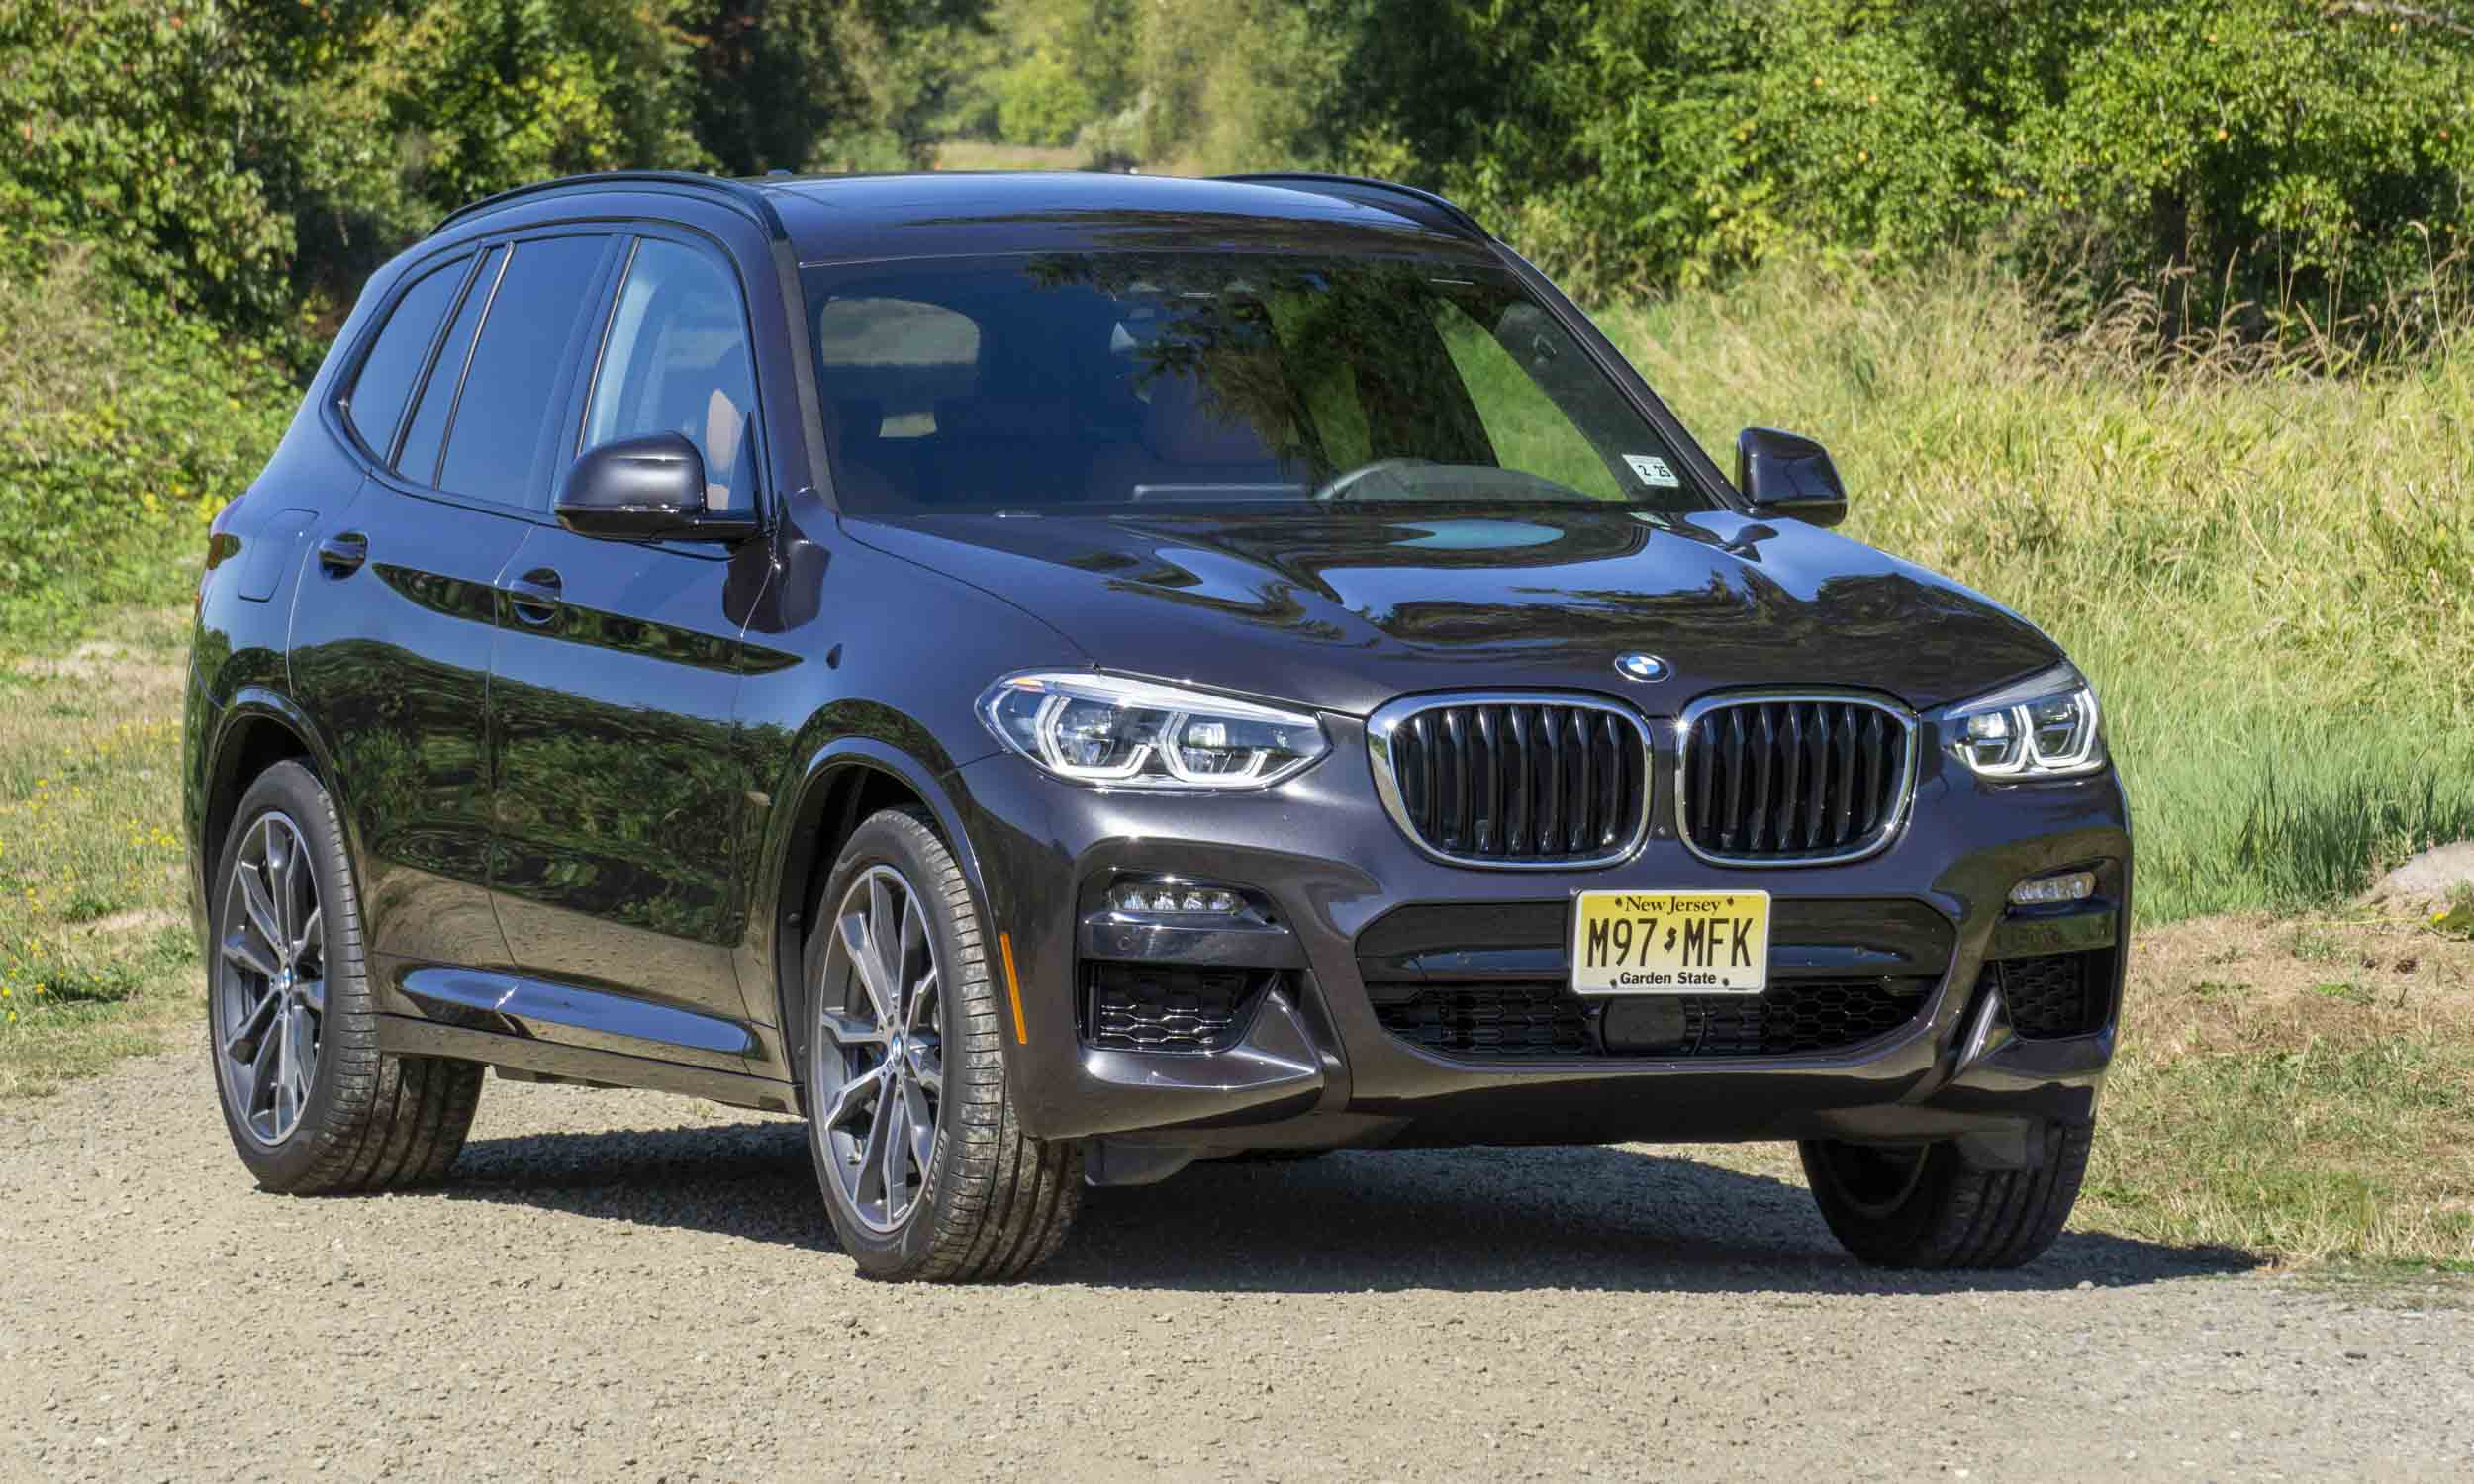 2020 BMW X3 xDrive30e Plug-in Hybrid: Review and Gallery ...